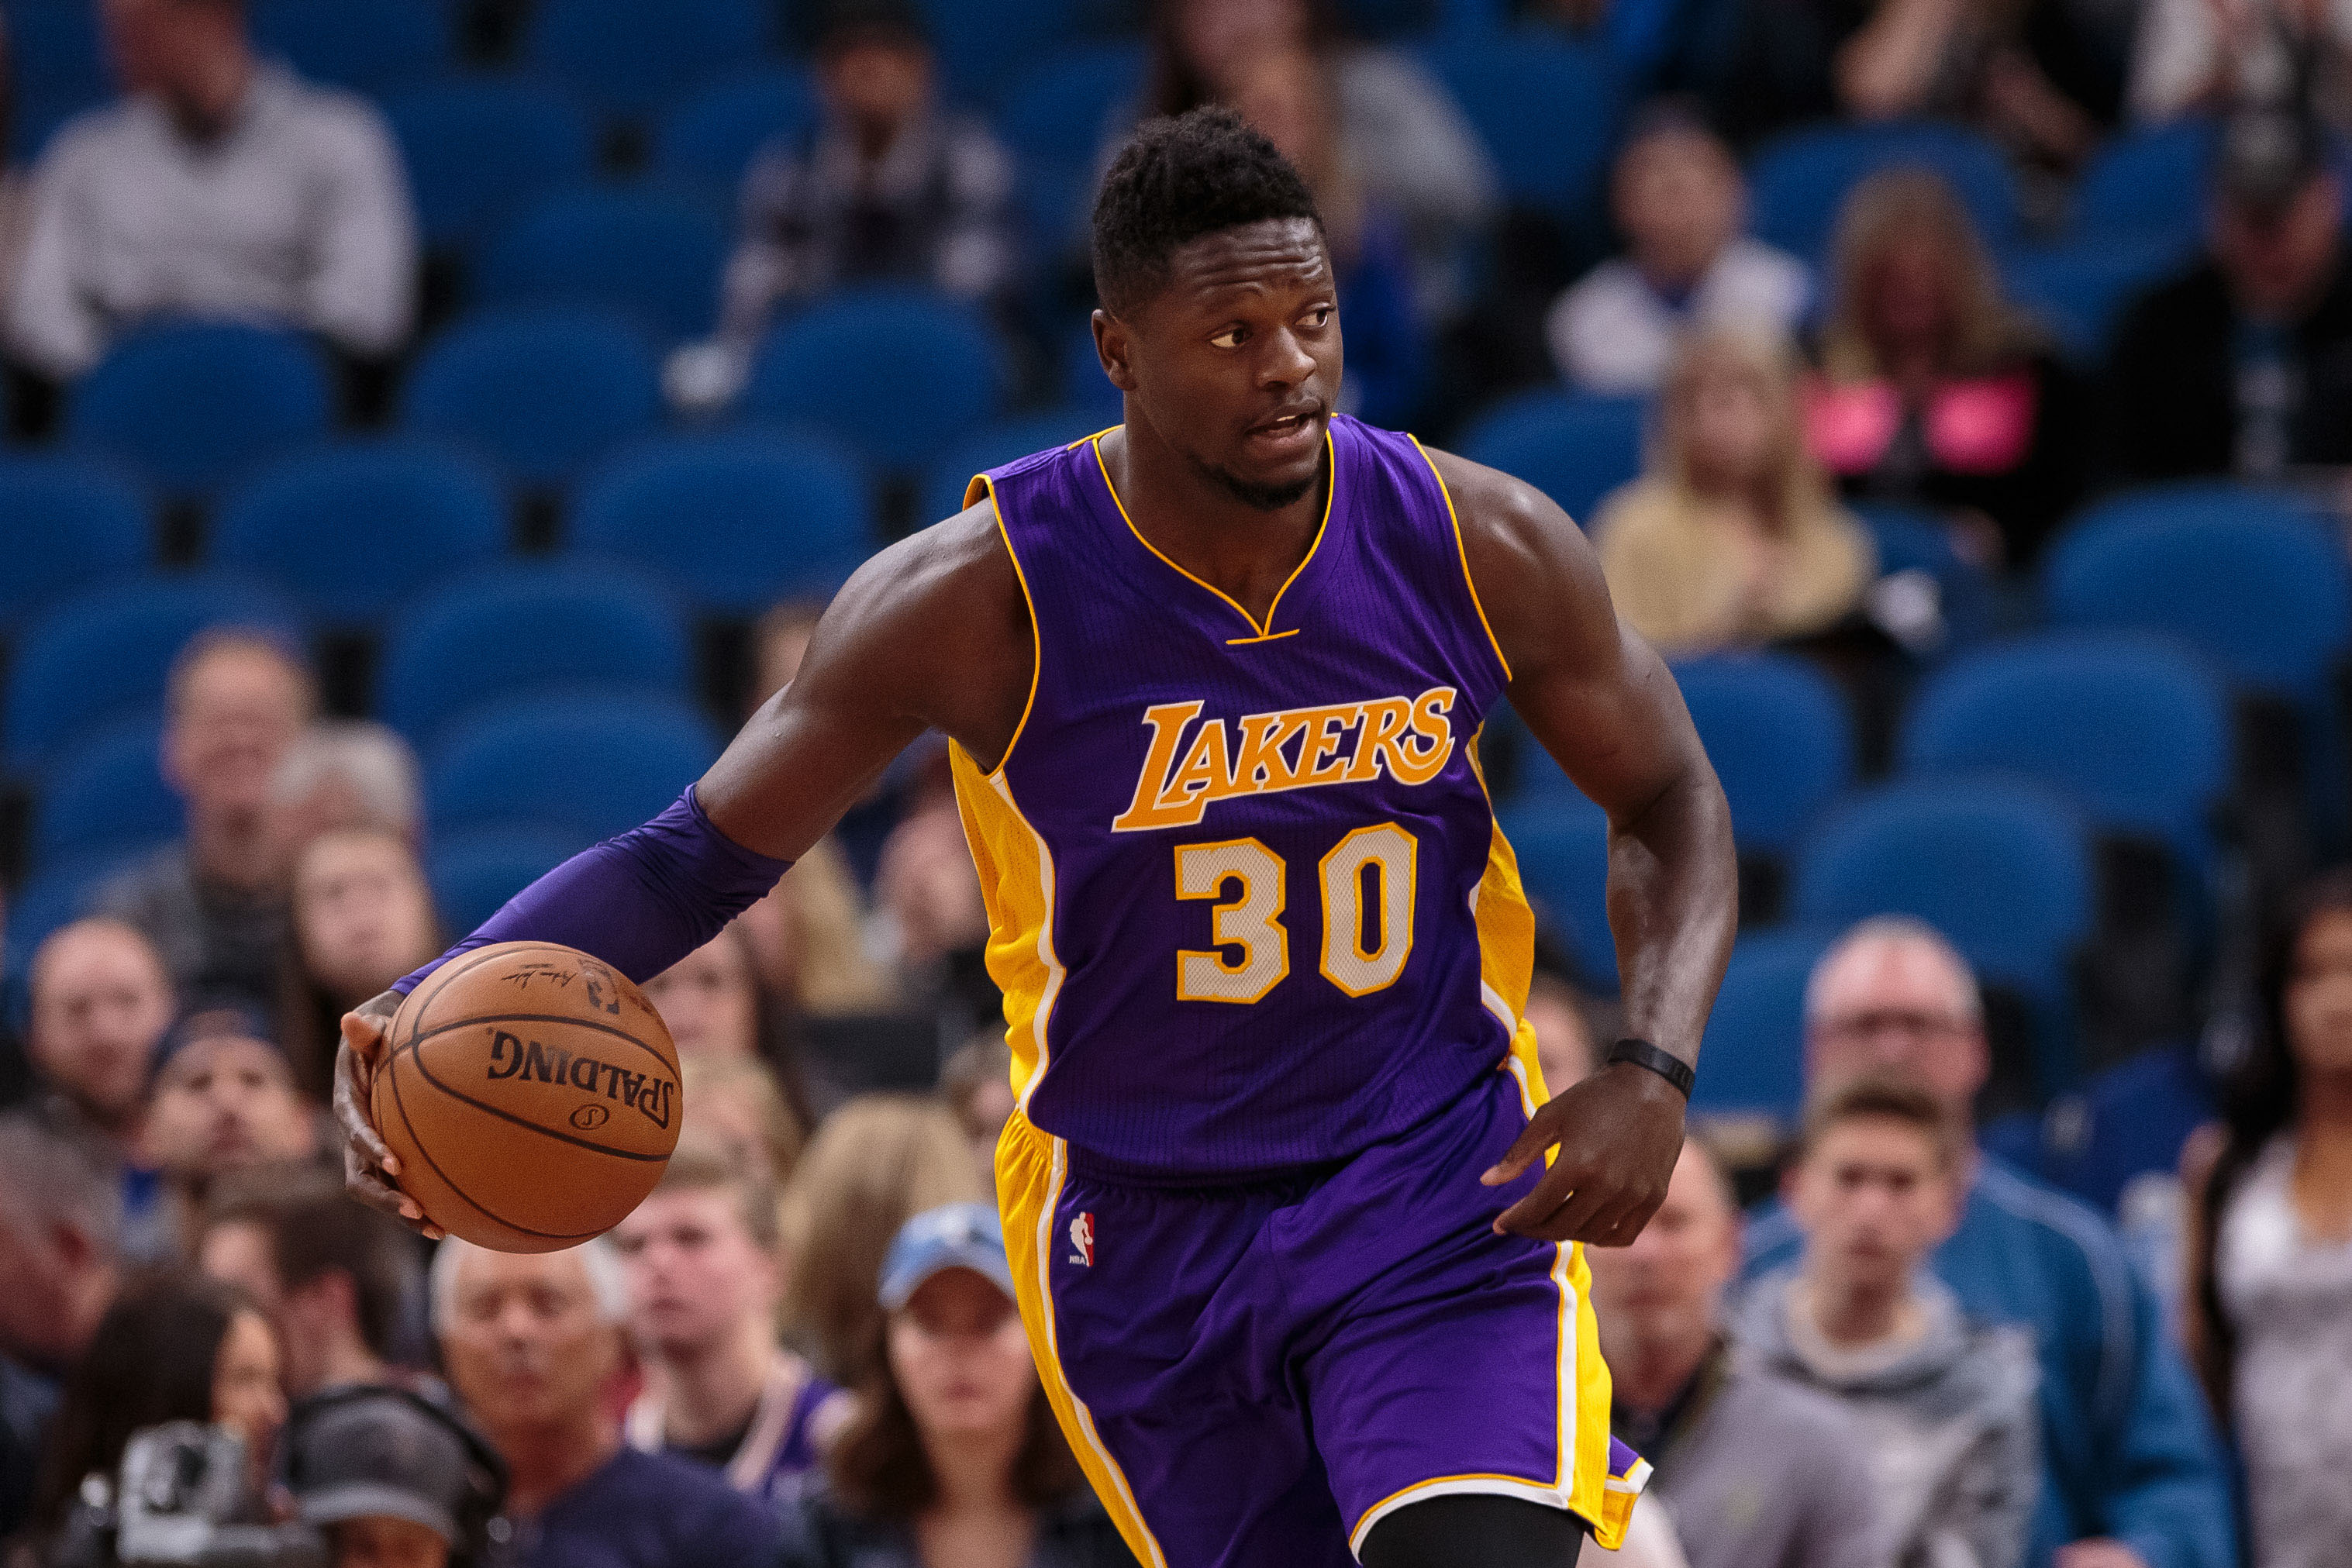 Nov 13, 2016; Minneapolis, MN, USA; Los Angeles Lakers forward Julius Randle (30) dribbles in the first quarter against the Minnesota Timberwolves at Target Center. Mandatory Credit: Brad Rempel-USA TODAY Sports